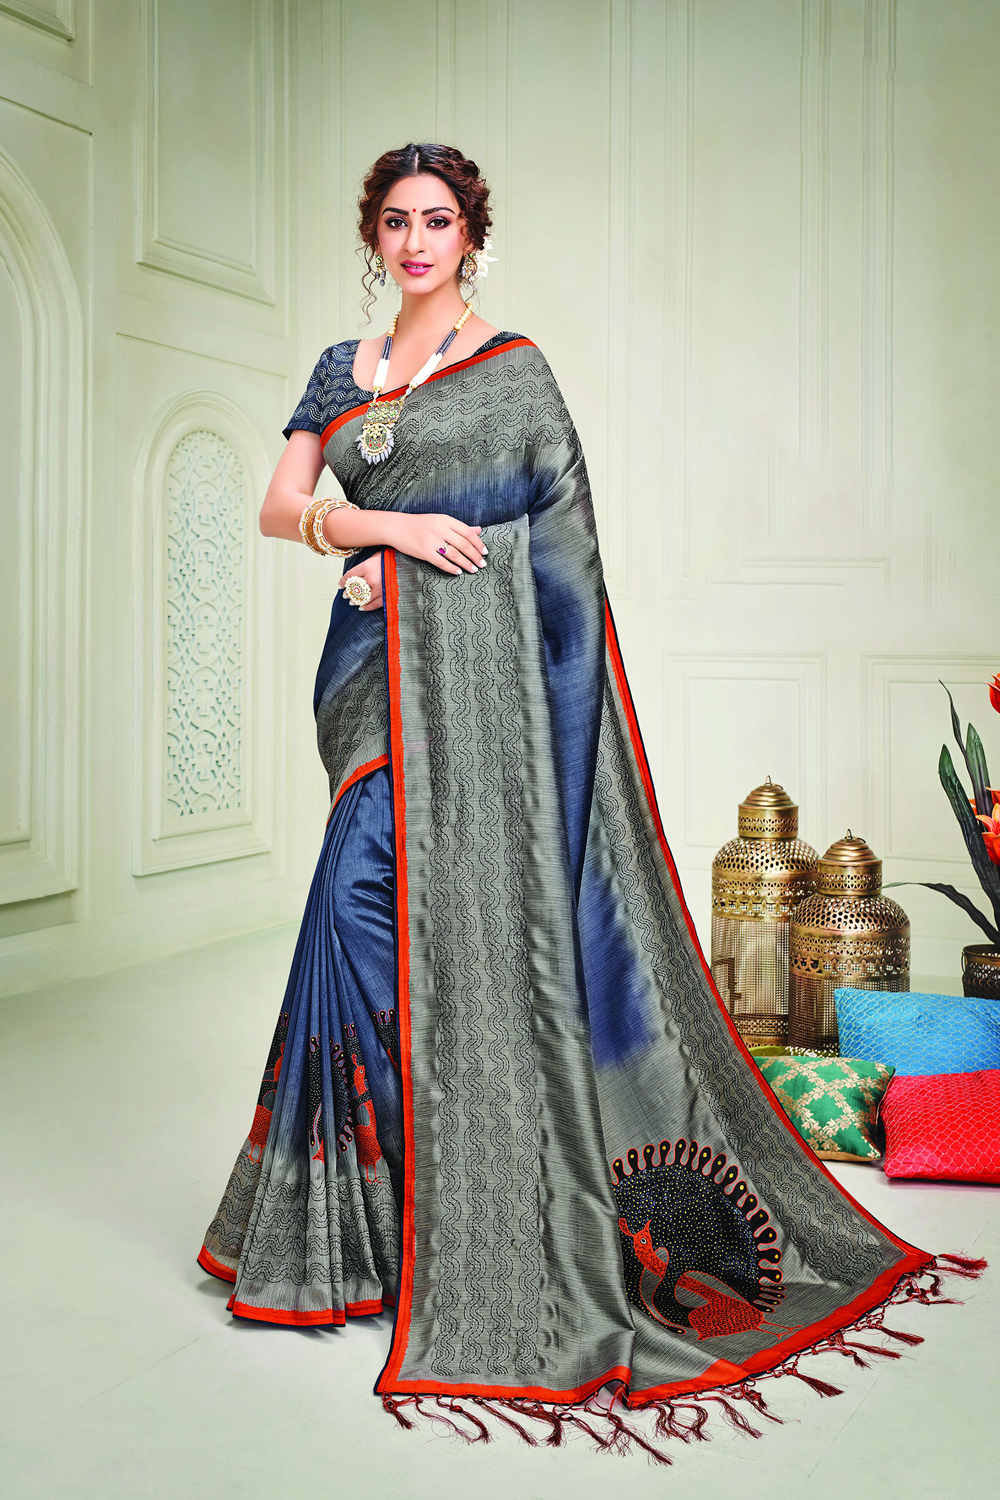 Grace your traditional occassions in this absolutely stunning kalamkari-inspired saree adorned with kantha embroidery details and look stunning   Pair with a statement temple-necklace to enhance the look